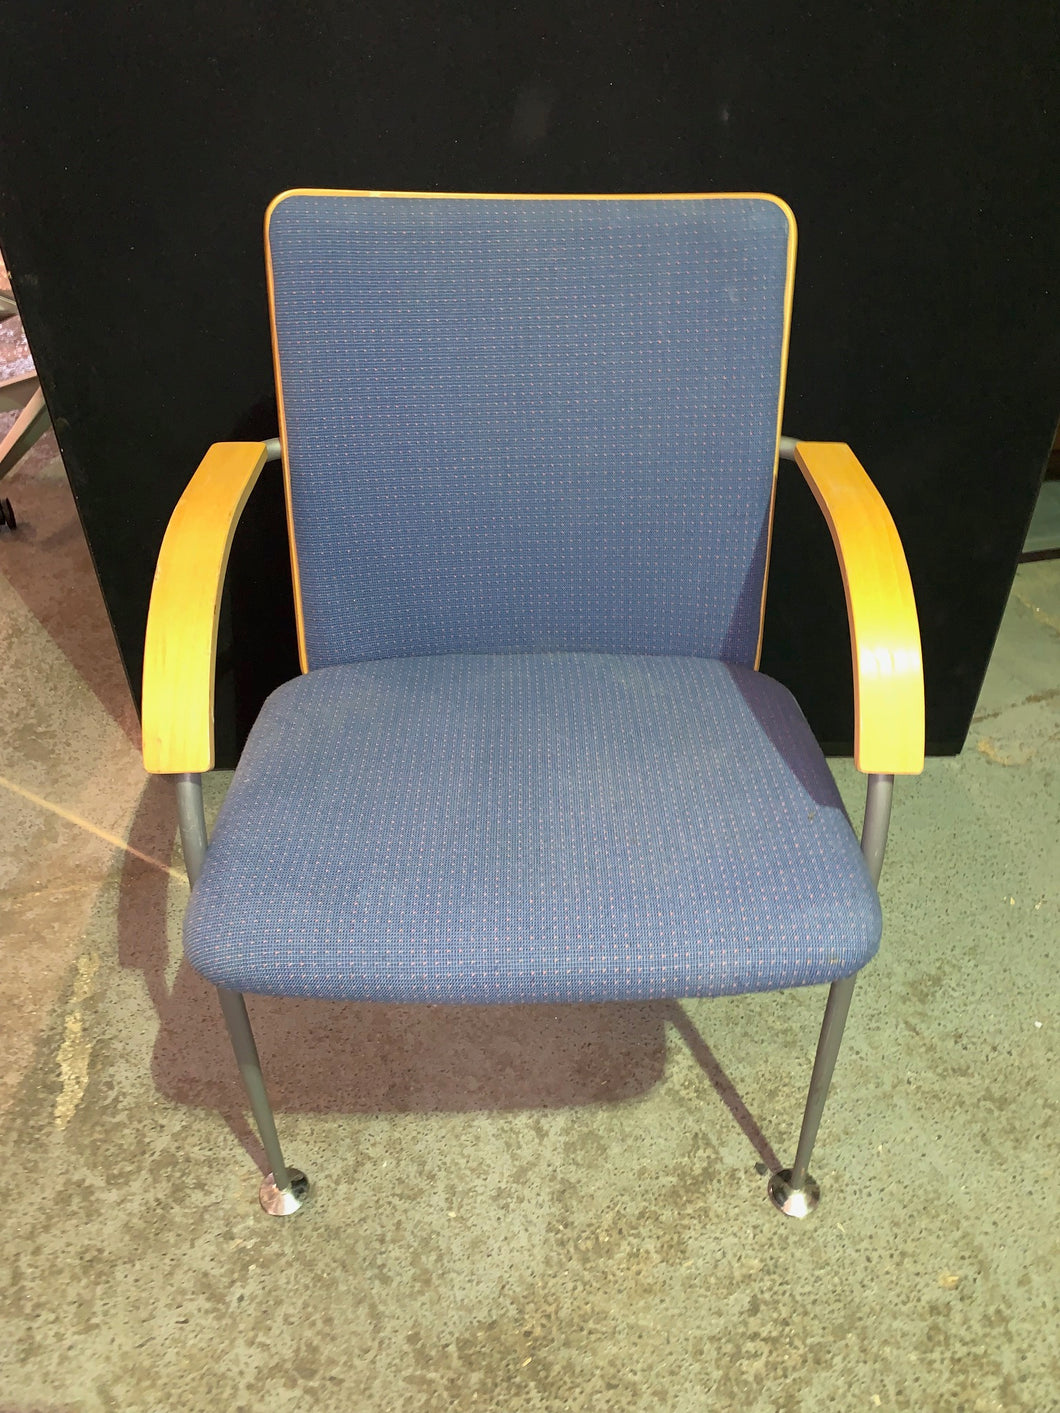 Blue Cloth Meeting Chair - Flogit2us.com